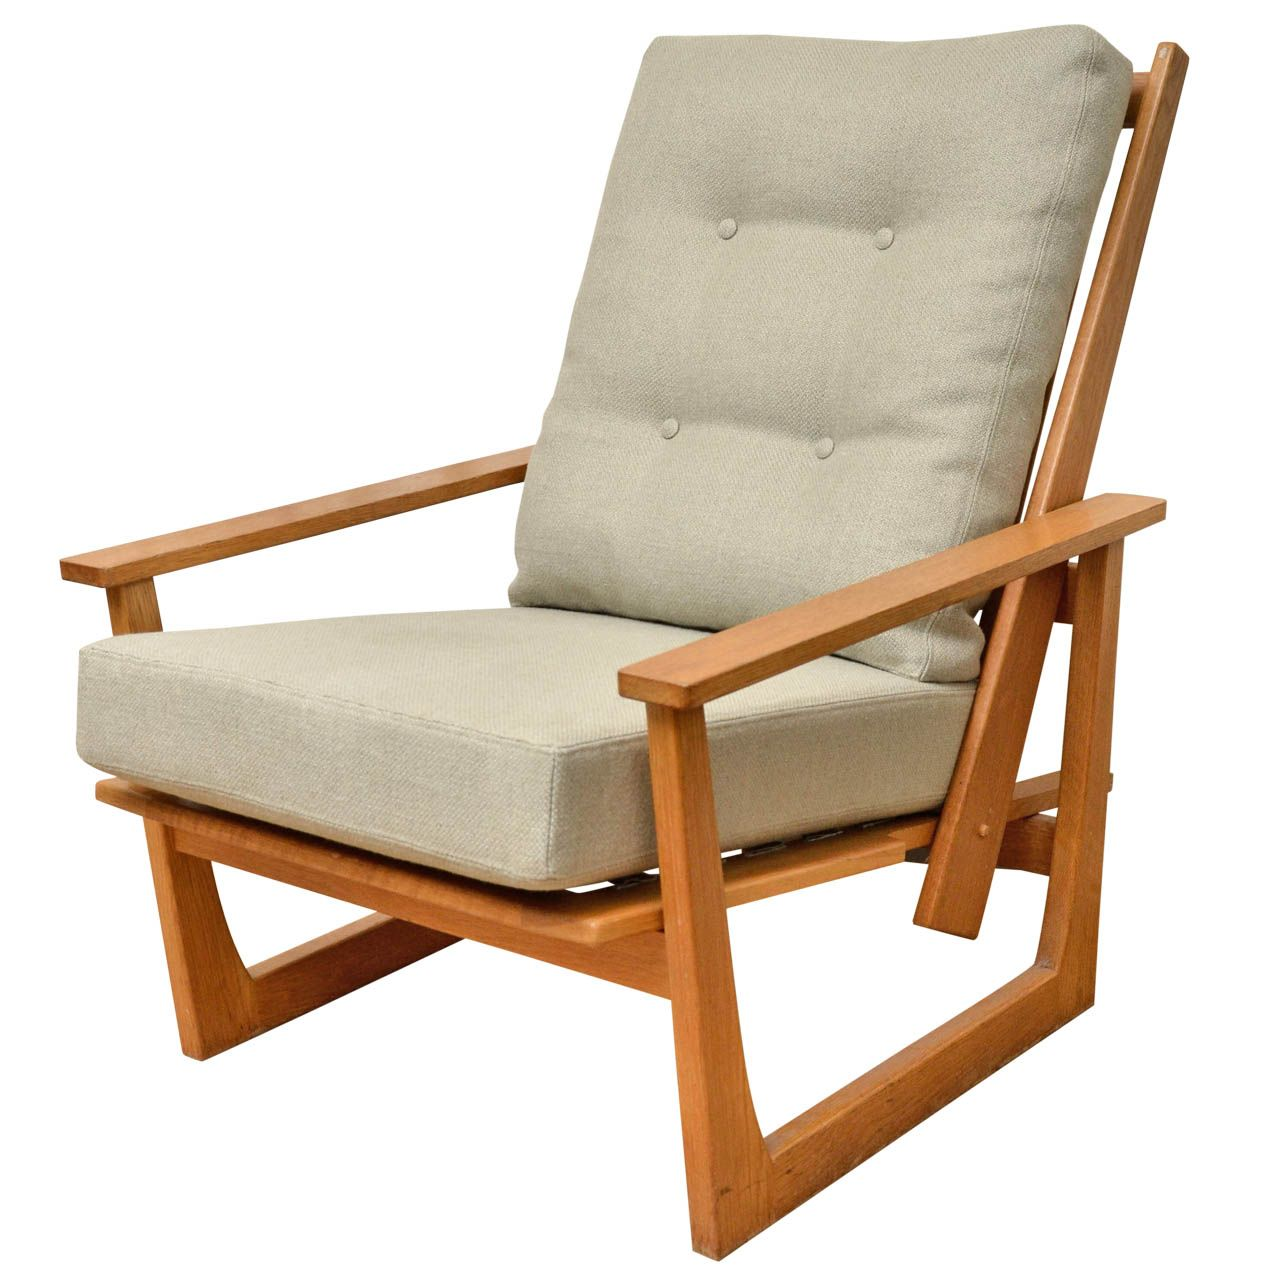 Delicieux Reclining Wooden Lounge Chair